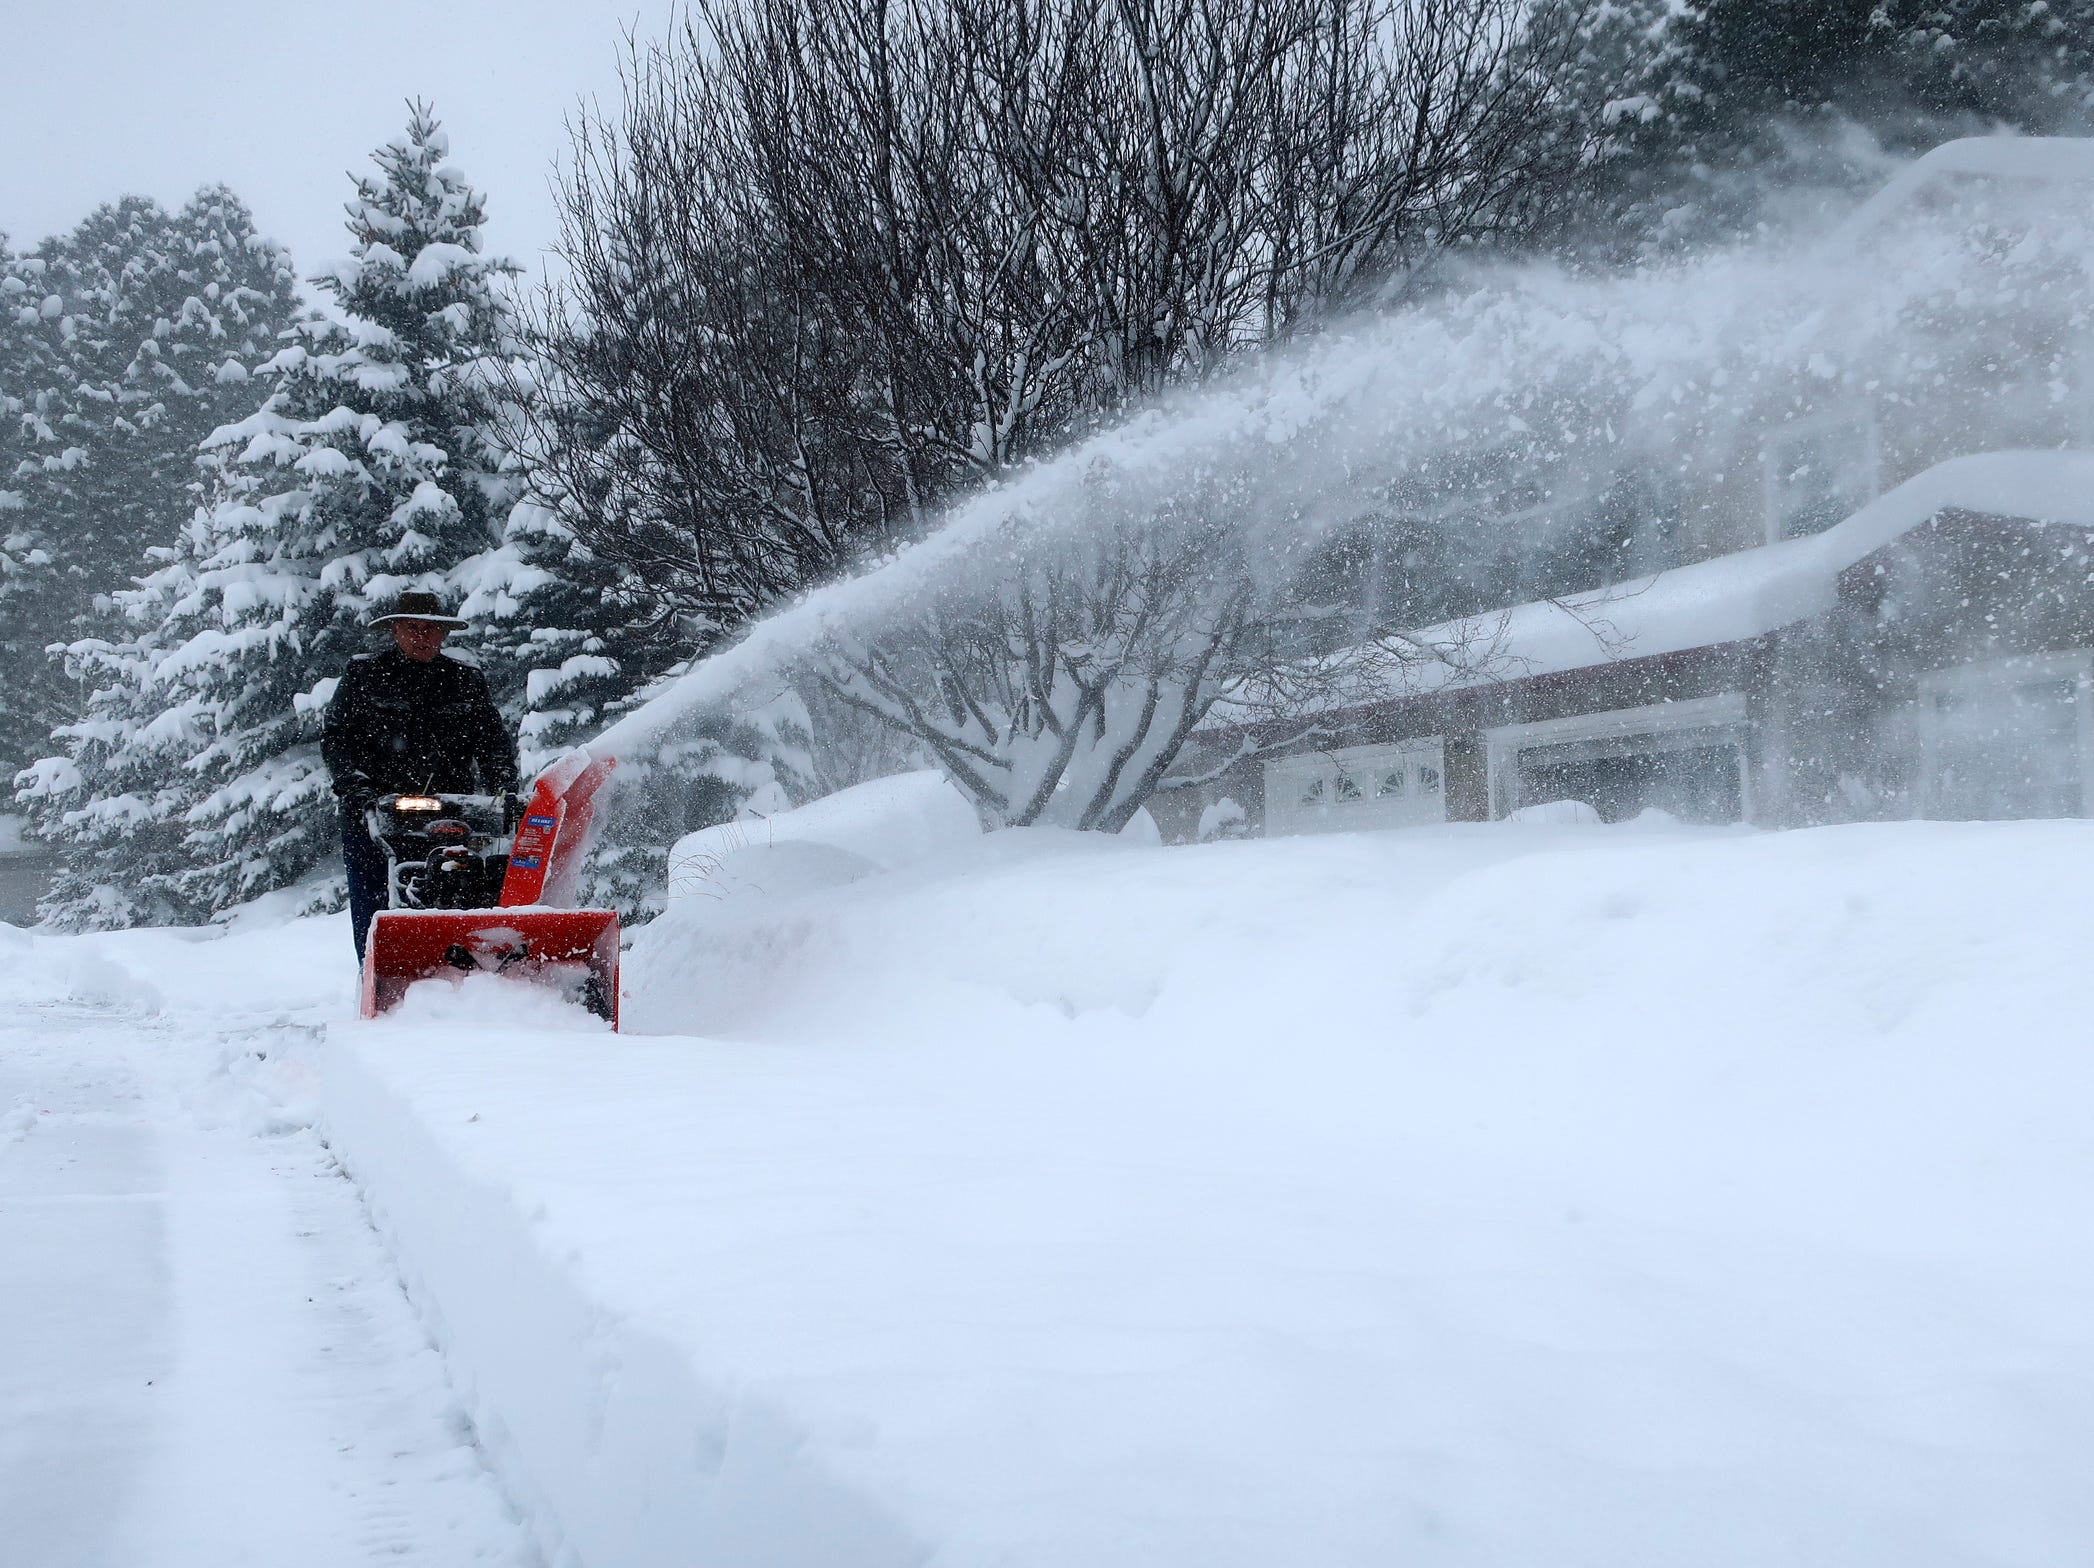 Richard Henn runs a snow blower down the sidewalk outside his home in Flagstaff, Arizona, on Thursday, Feb. 21, 2019. Schools across northern Arizona canceled classes and some government offices decided to close amid a winter storm that's expected to dump heavy snow in the region.